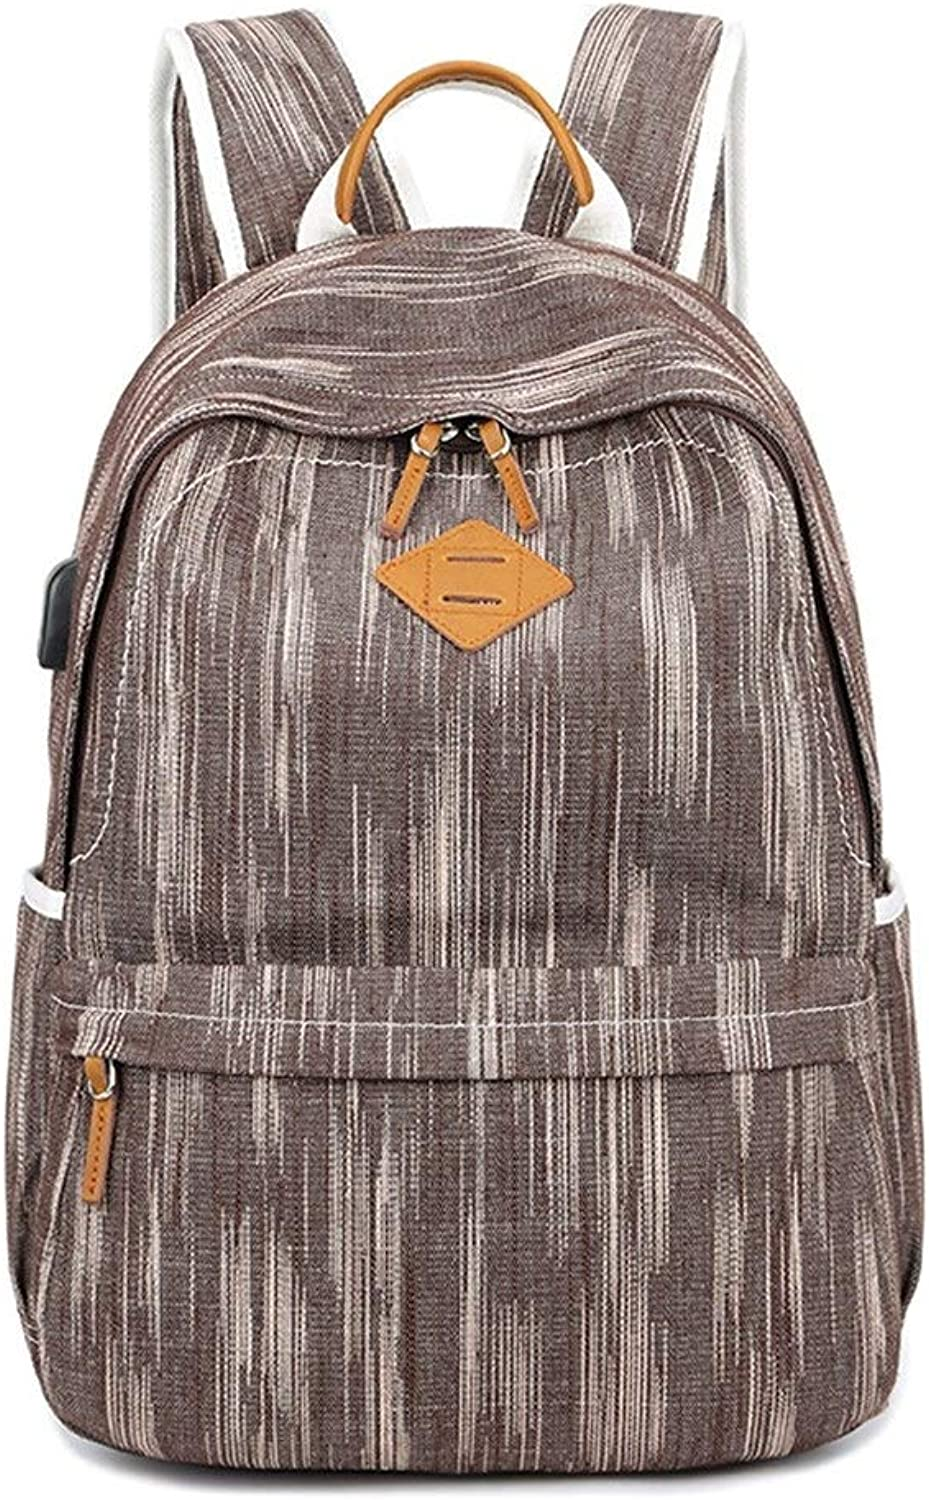 Backpack, USB Backpack Female Student Canvas Backpack Male Leisure Outdoor Travel Computer Bag (color   Coffee)